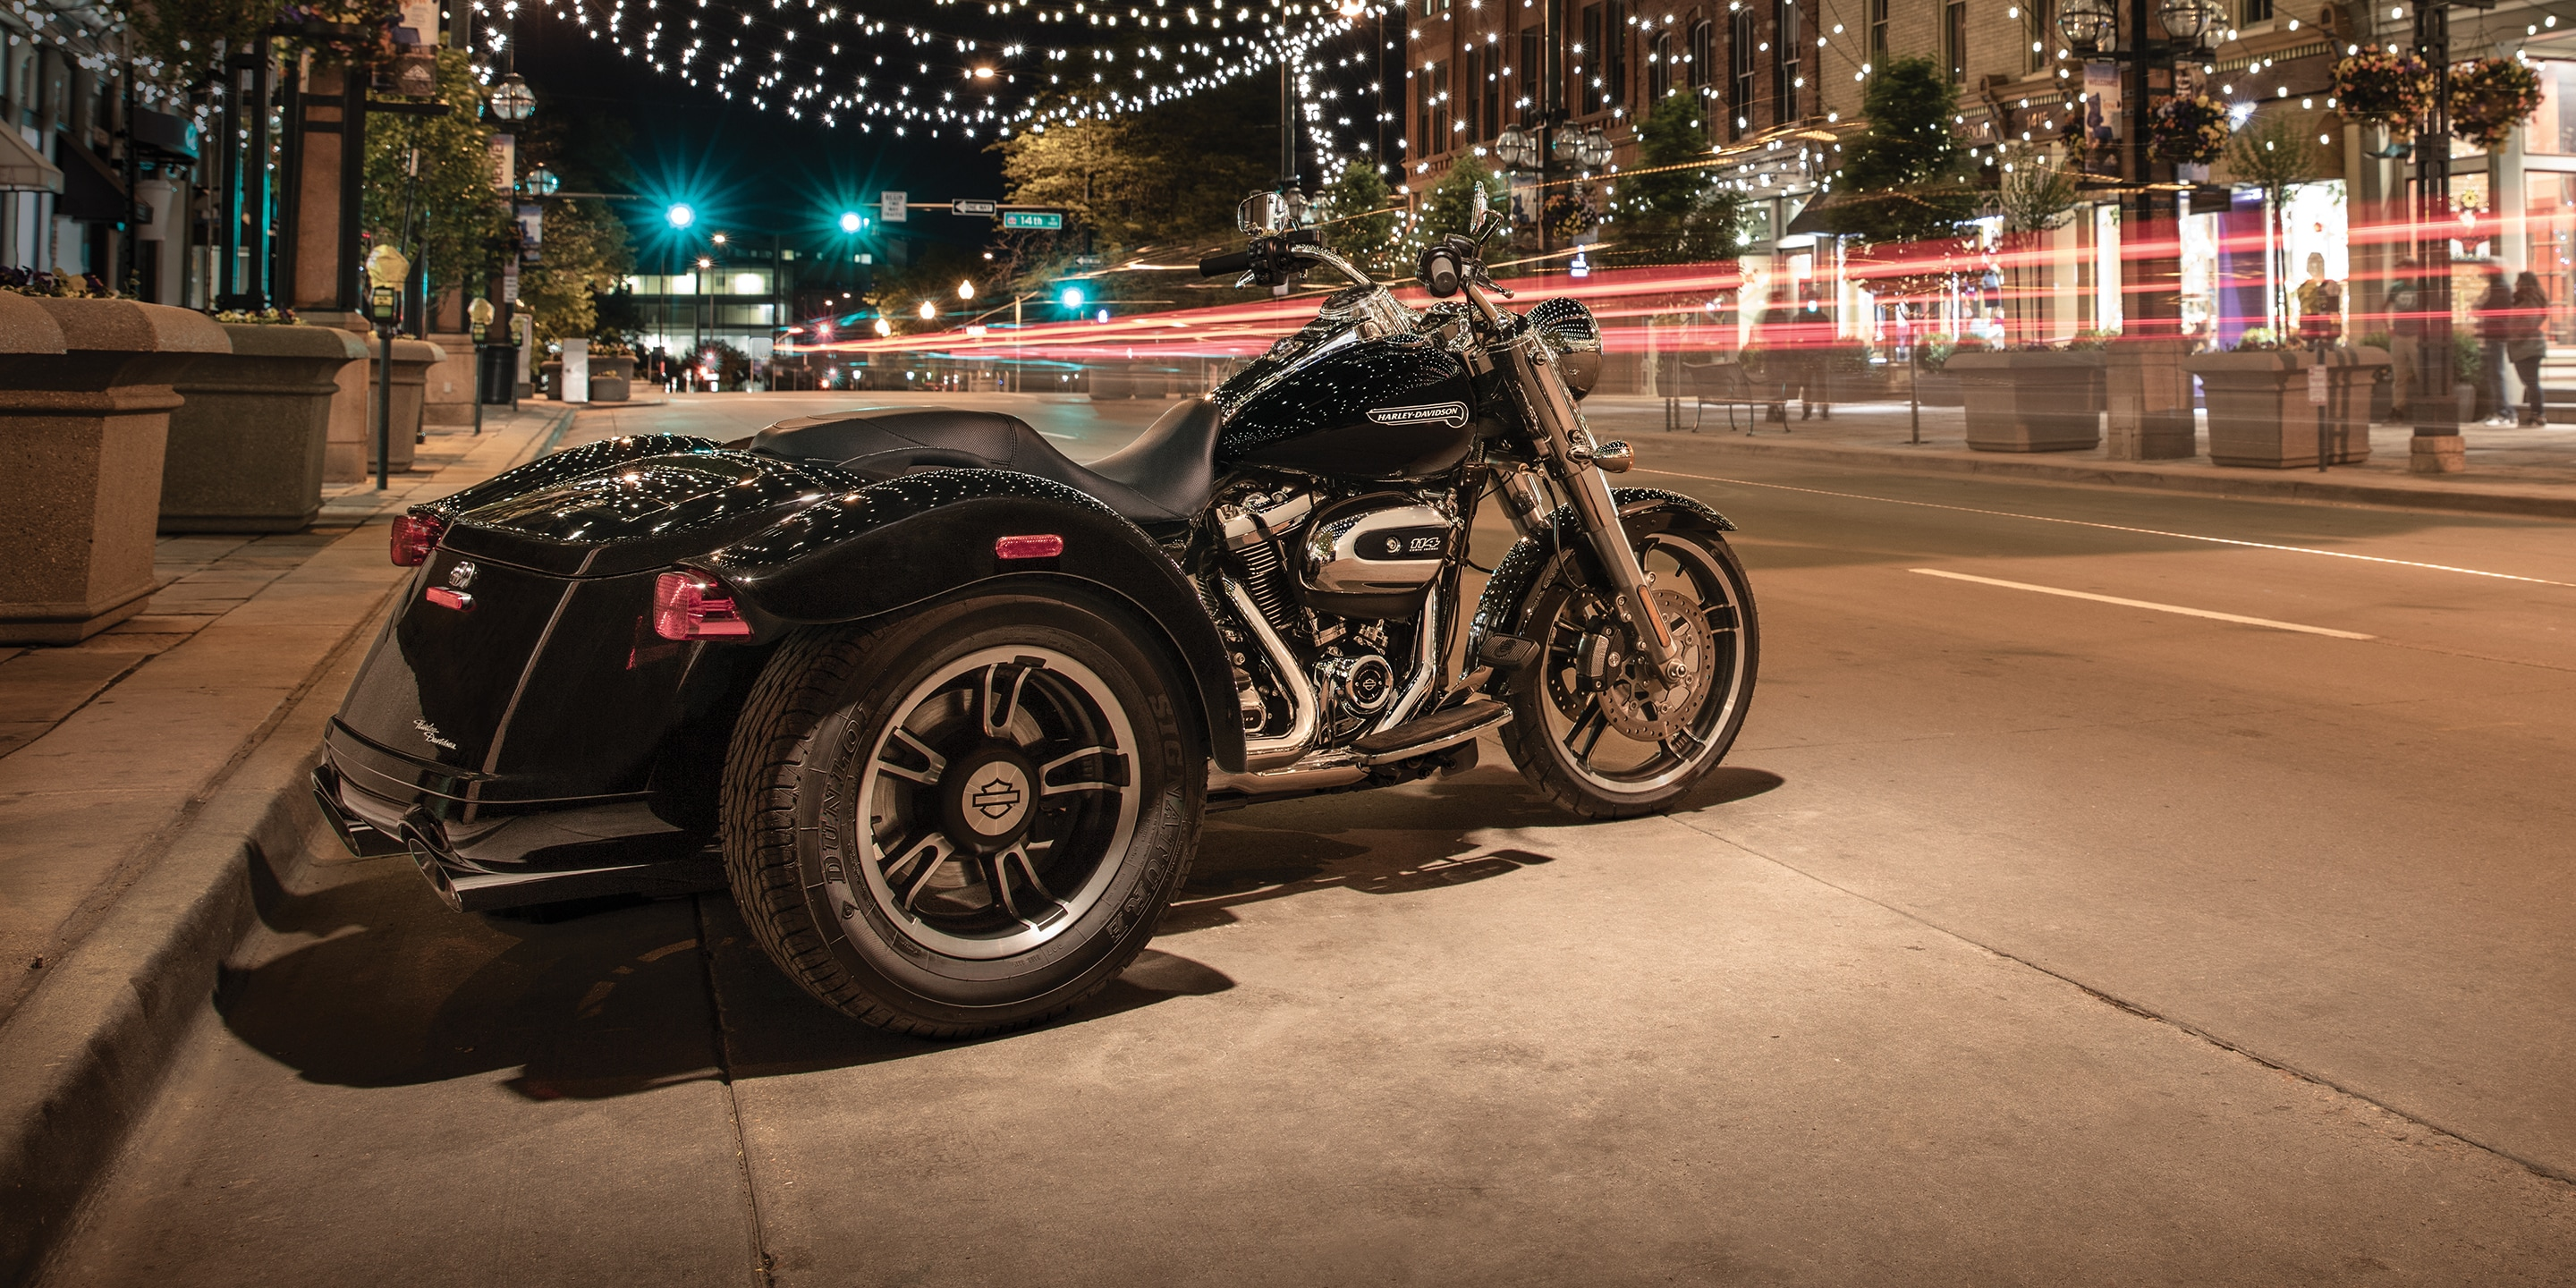 2019 Freewheeler H-D Motorcycle Parked On a street